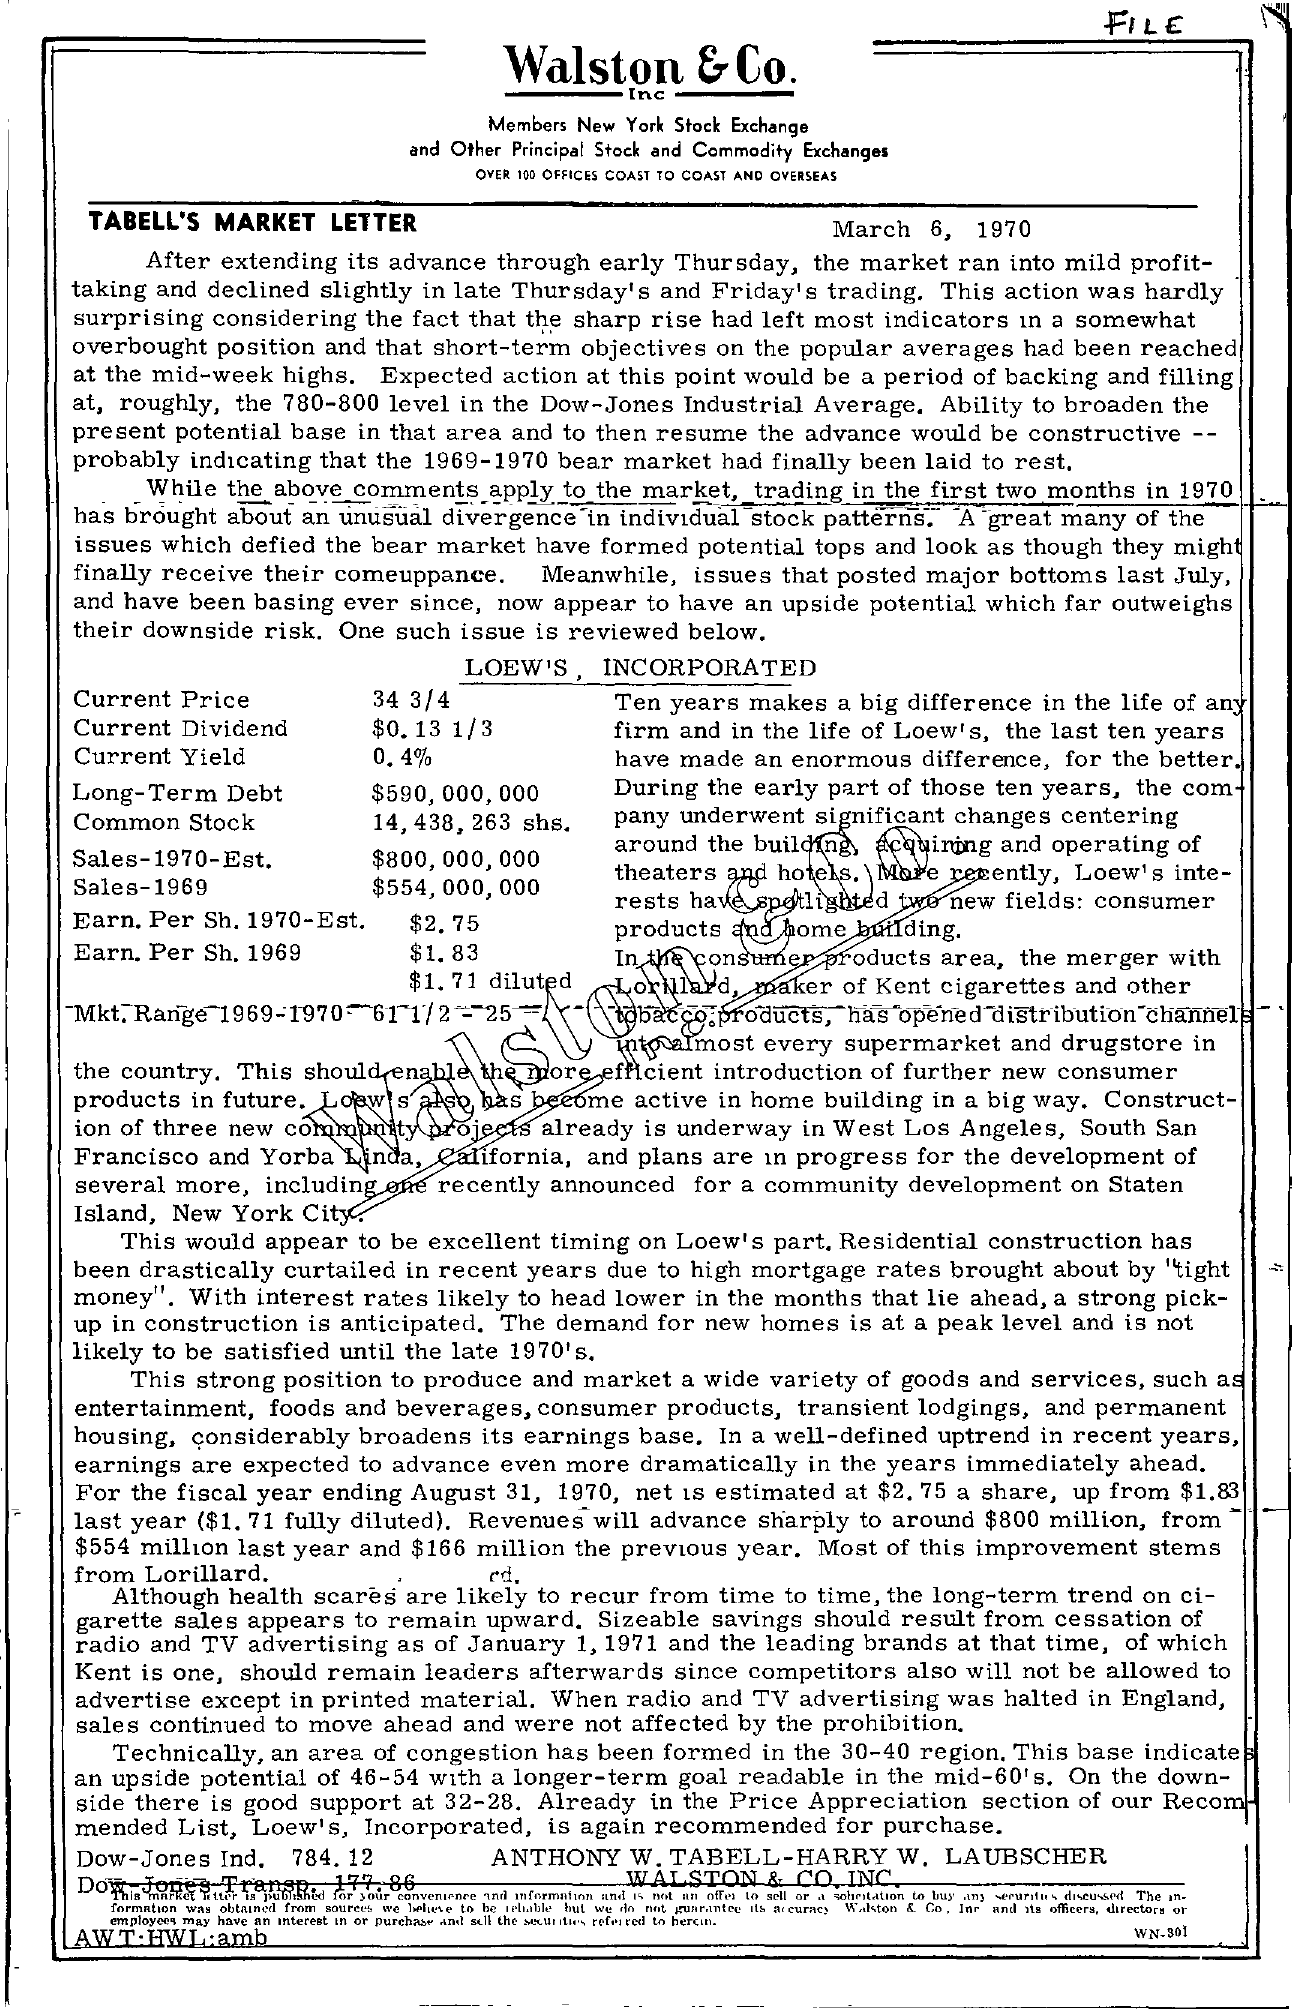 Tabell's Market Letter - March 06, 1970